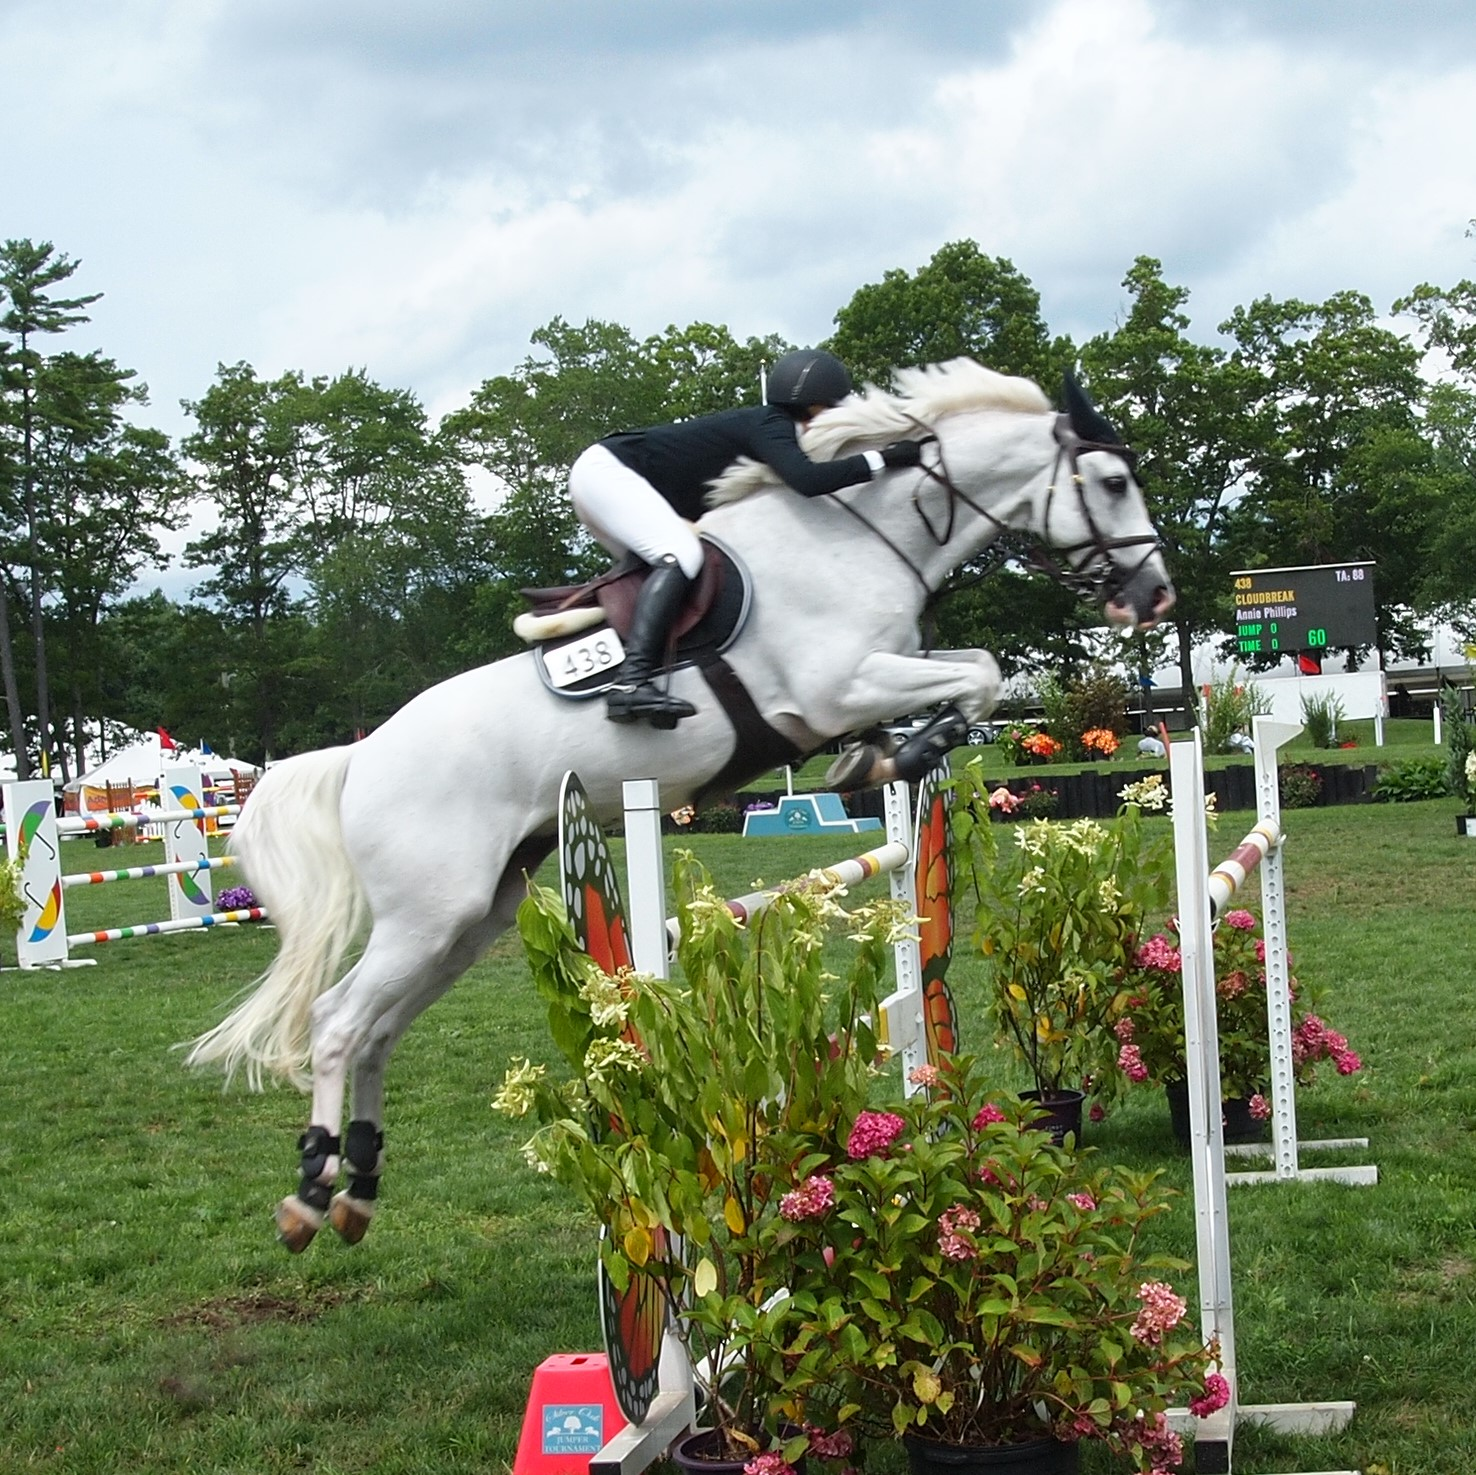 Horse Show Jumping Photography | Photo net Photography Forums